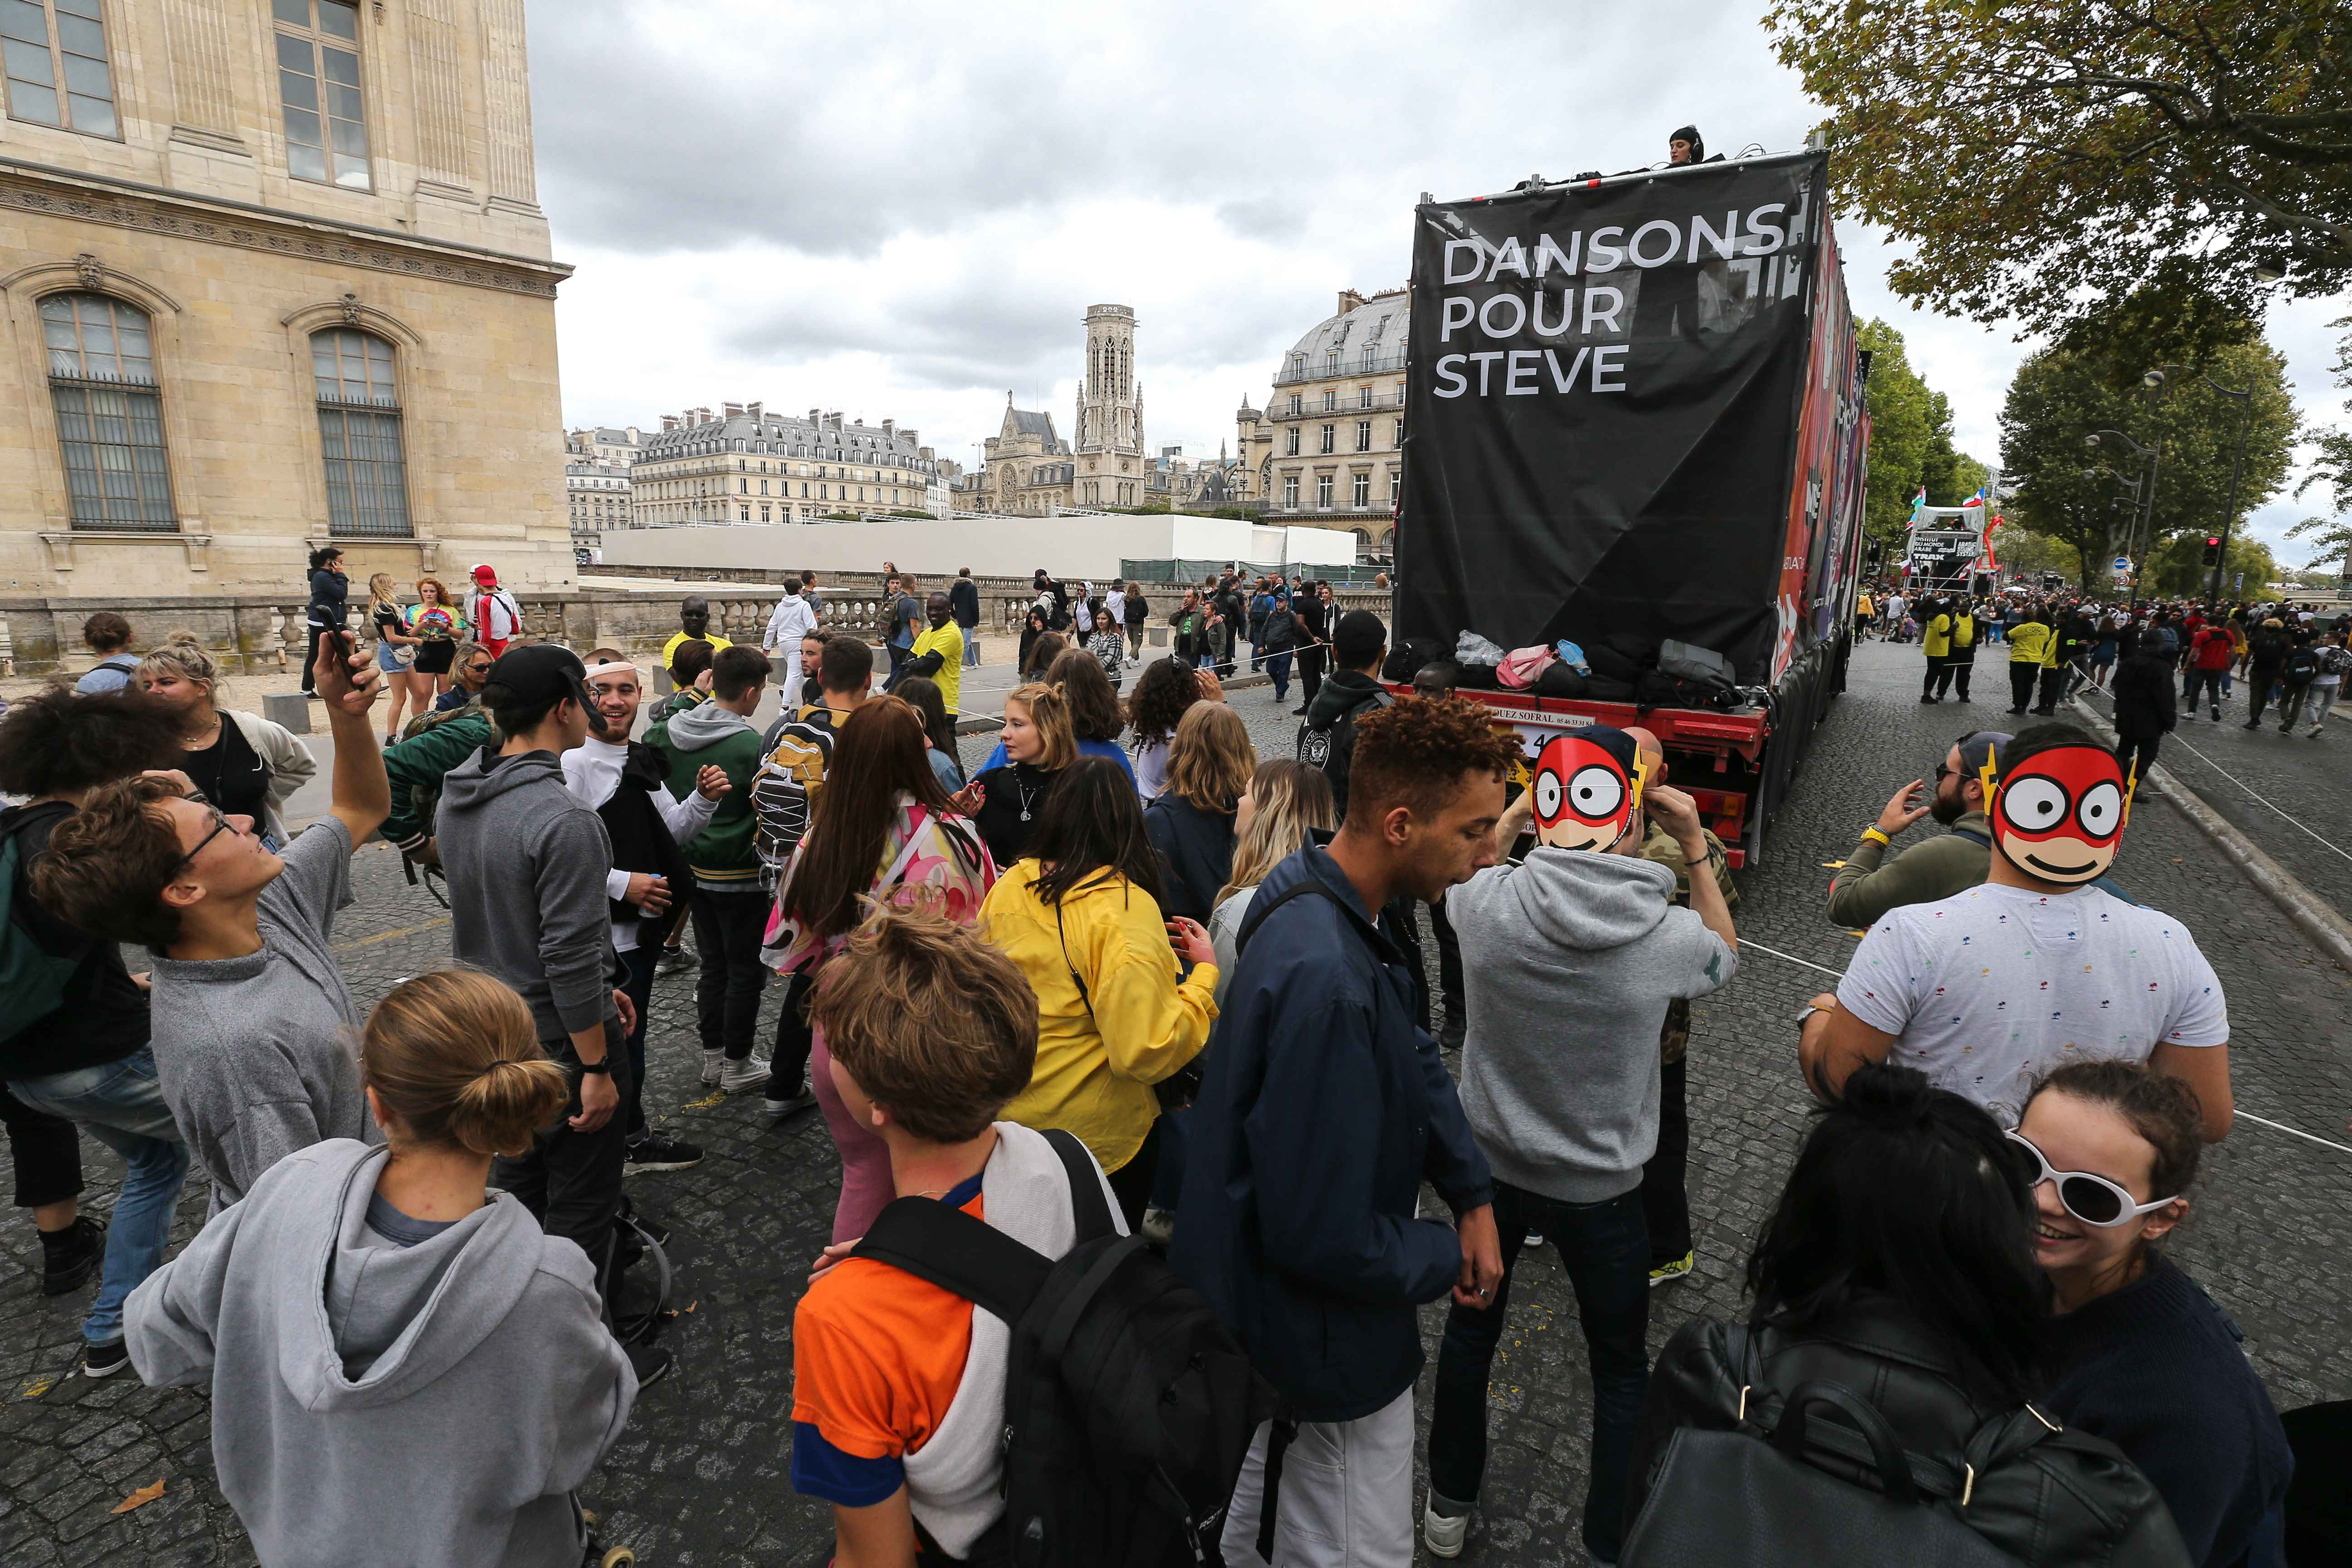 People take part in the 21st annual Techno Parade in Paris, on September 28, 2019. A banner on a float reading : « Let's dance for Steve ». This year parade was dedicated to the memory of Steve Canico, a young techno fan who went missing on June 21, 20